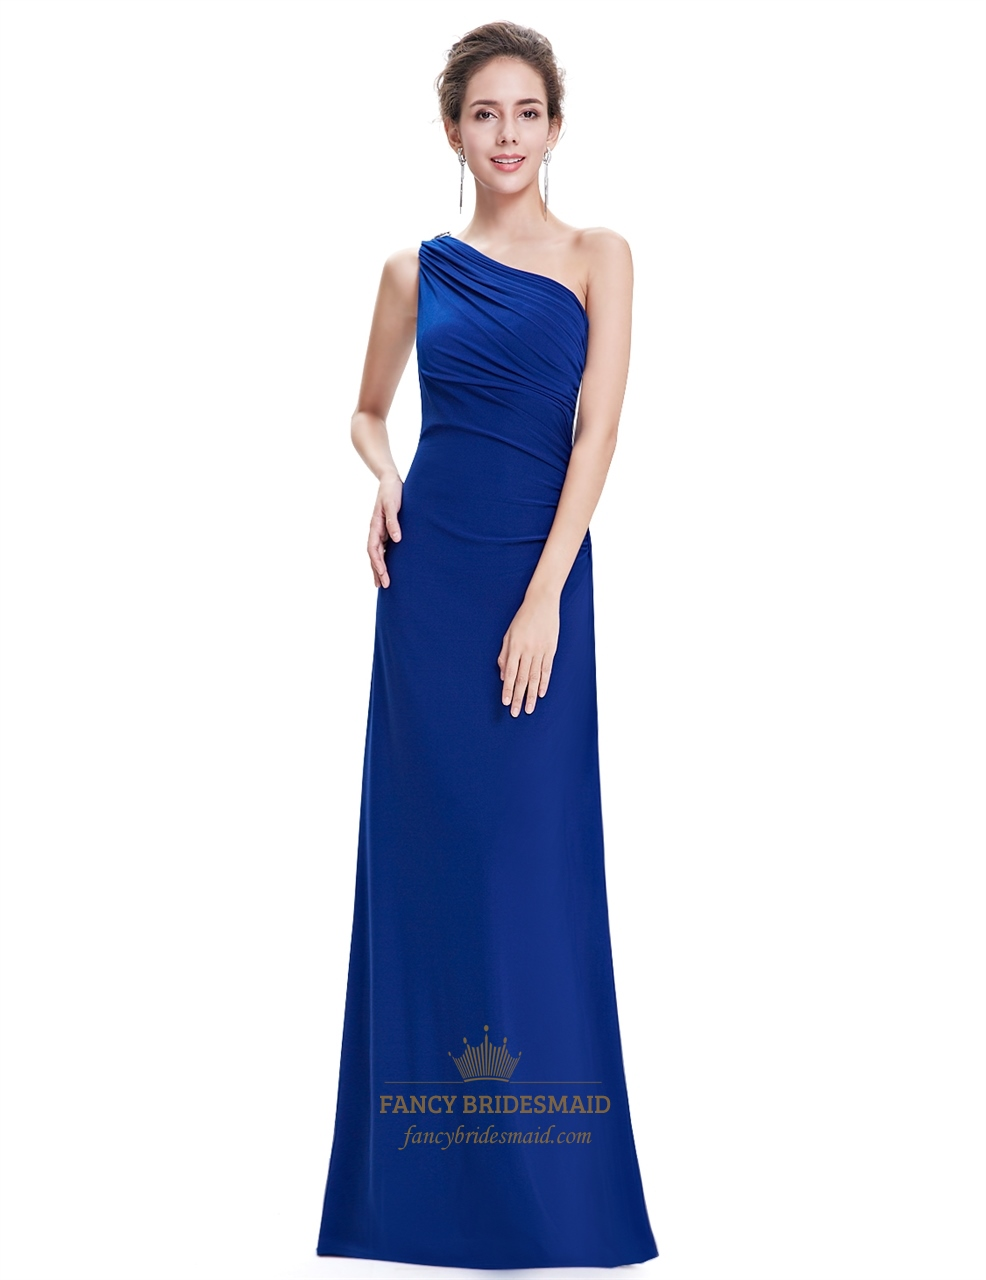 Royal Blue One Shoulder Sheath Bridesmaid Dress With Ruffle Back